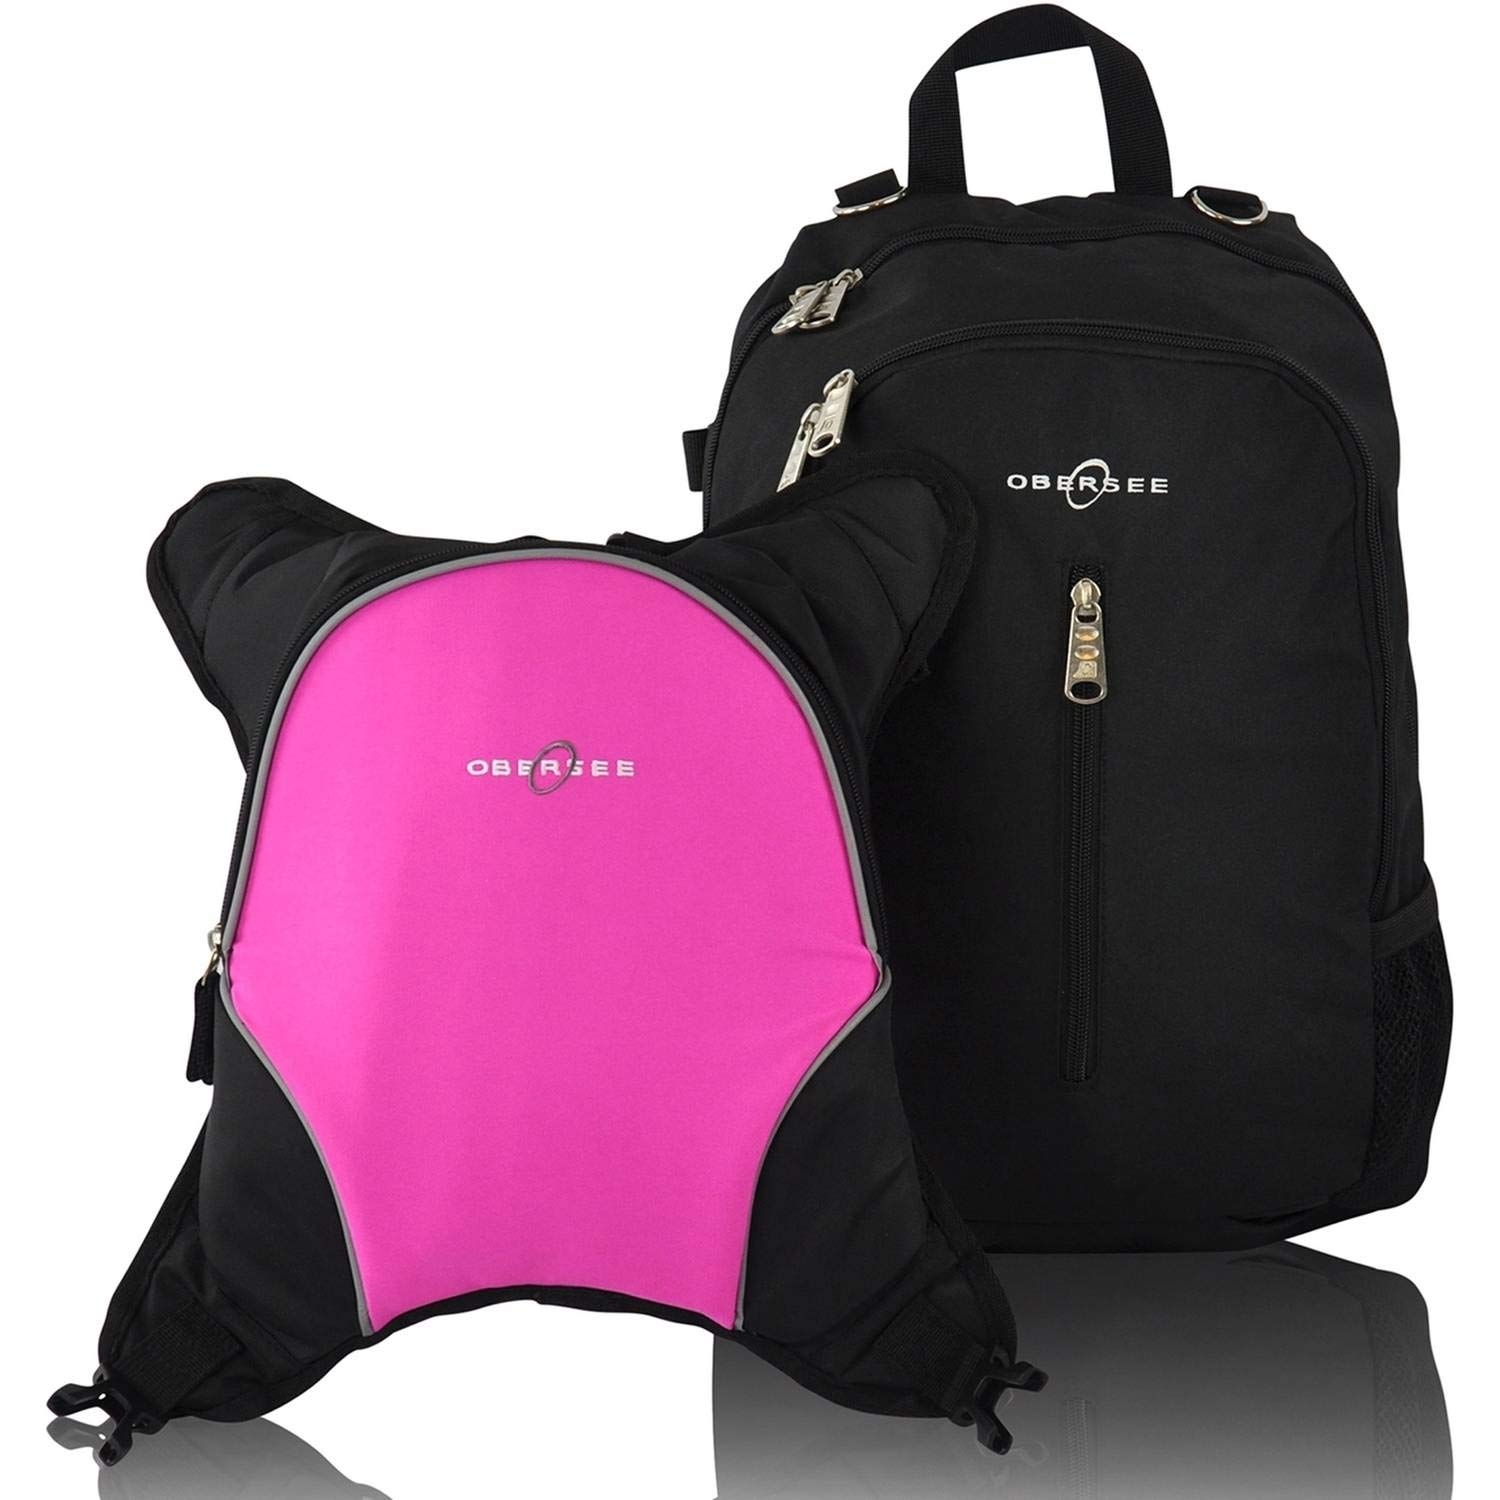 Rio Diaper Backpack with Baby Bottle Cooler and Changing Mat, Shoulder Baby Bag, Food Cooler, Clip to Stroller (Black/Pink) - OberseeObersee Rio Diaper Bag Backpack with Detachable Cooler, Black/Pink